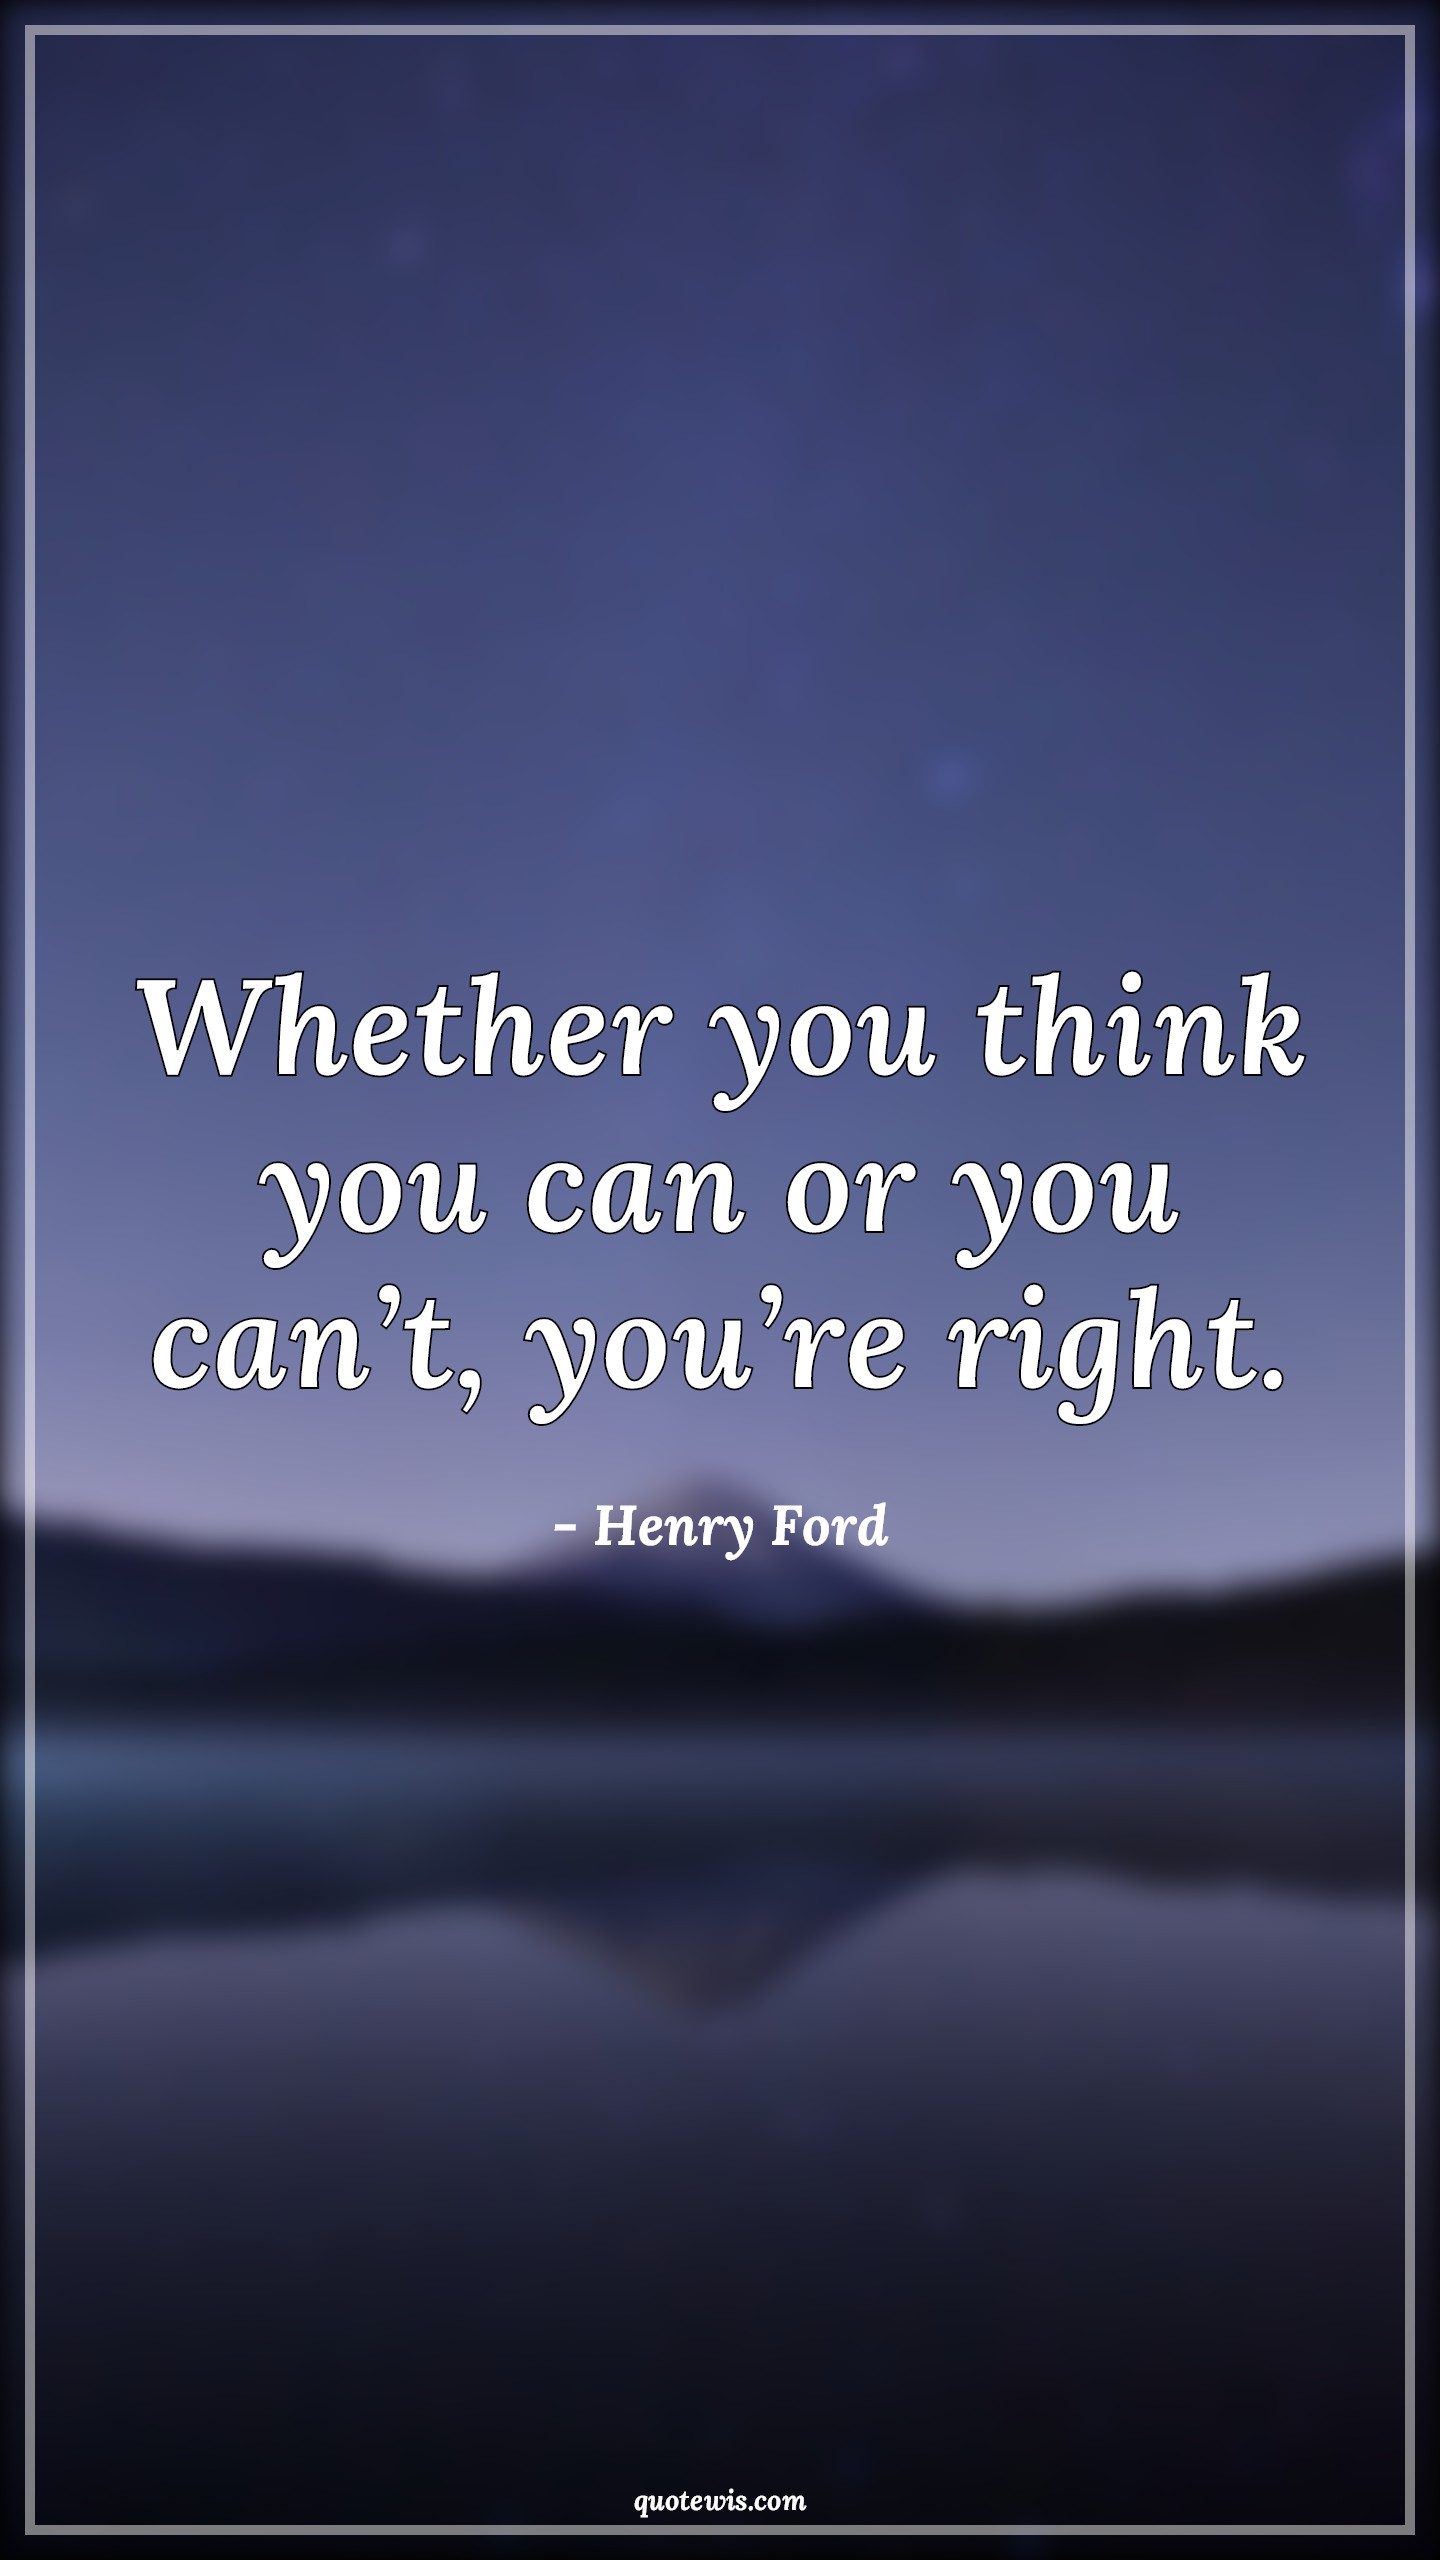 Whether you think you can or you can't, you're right.